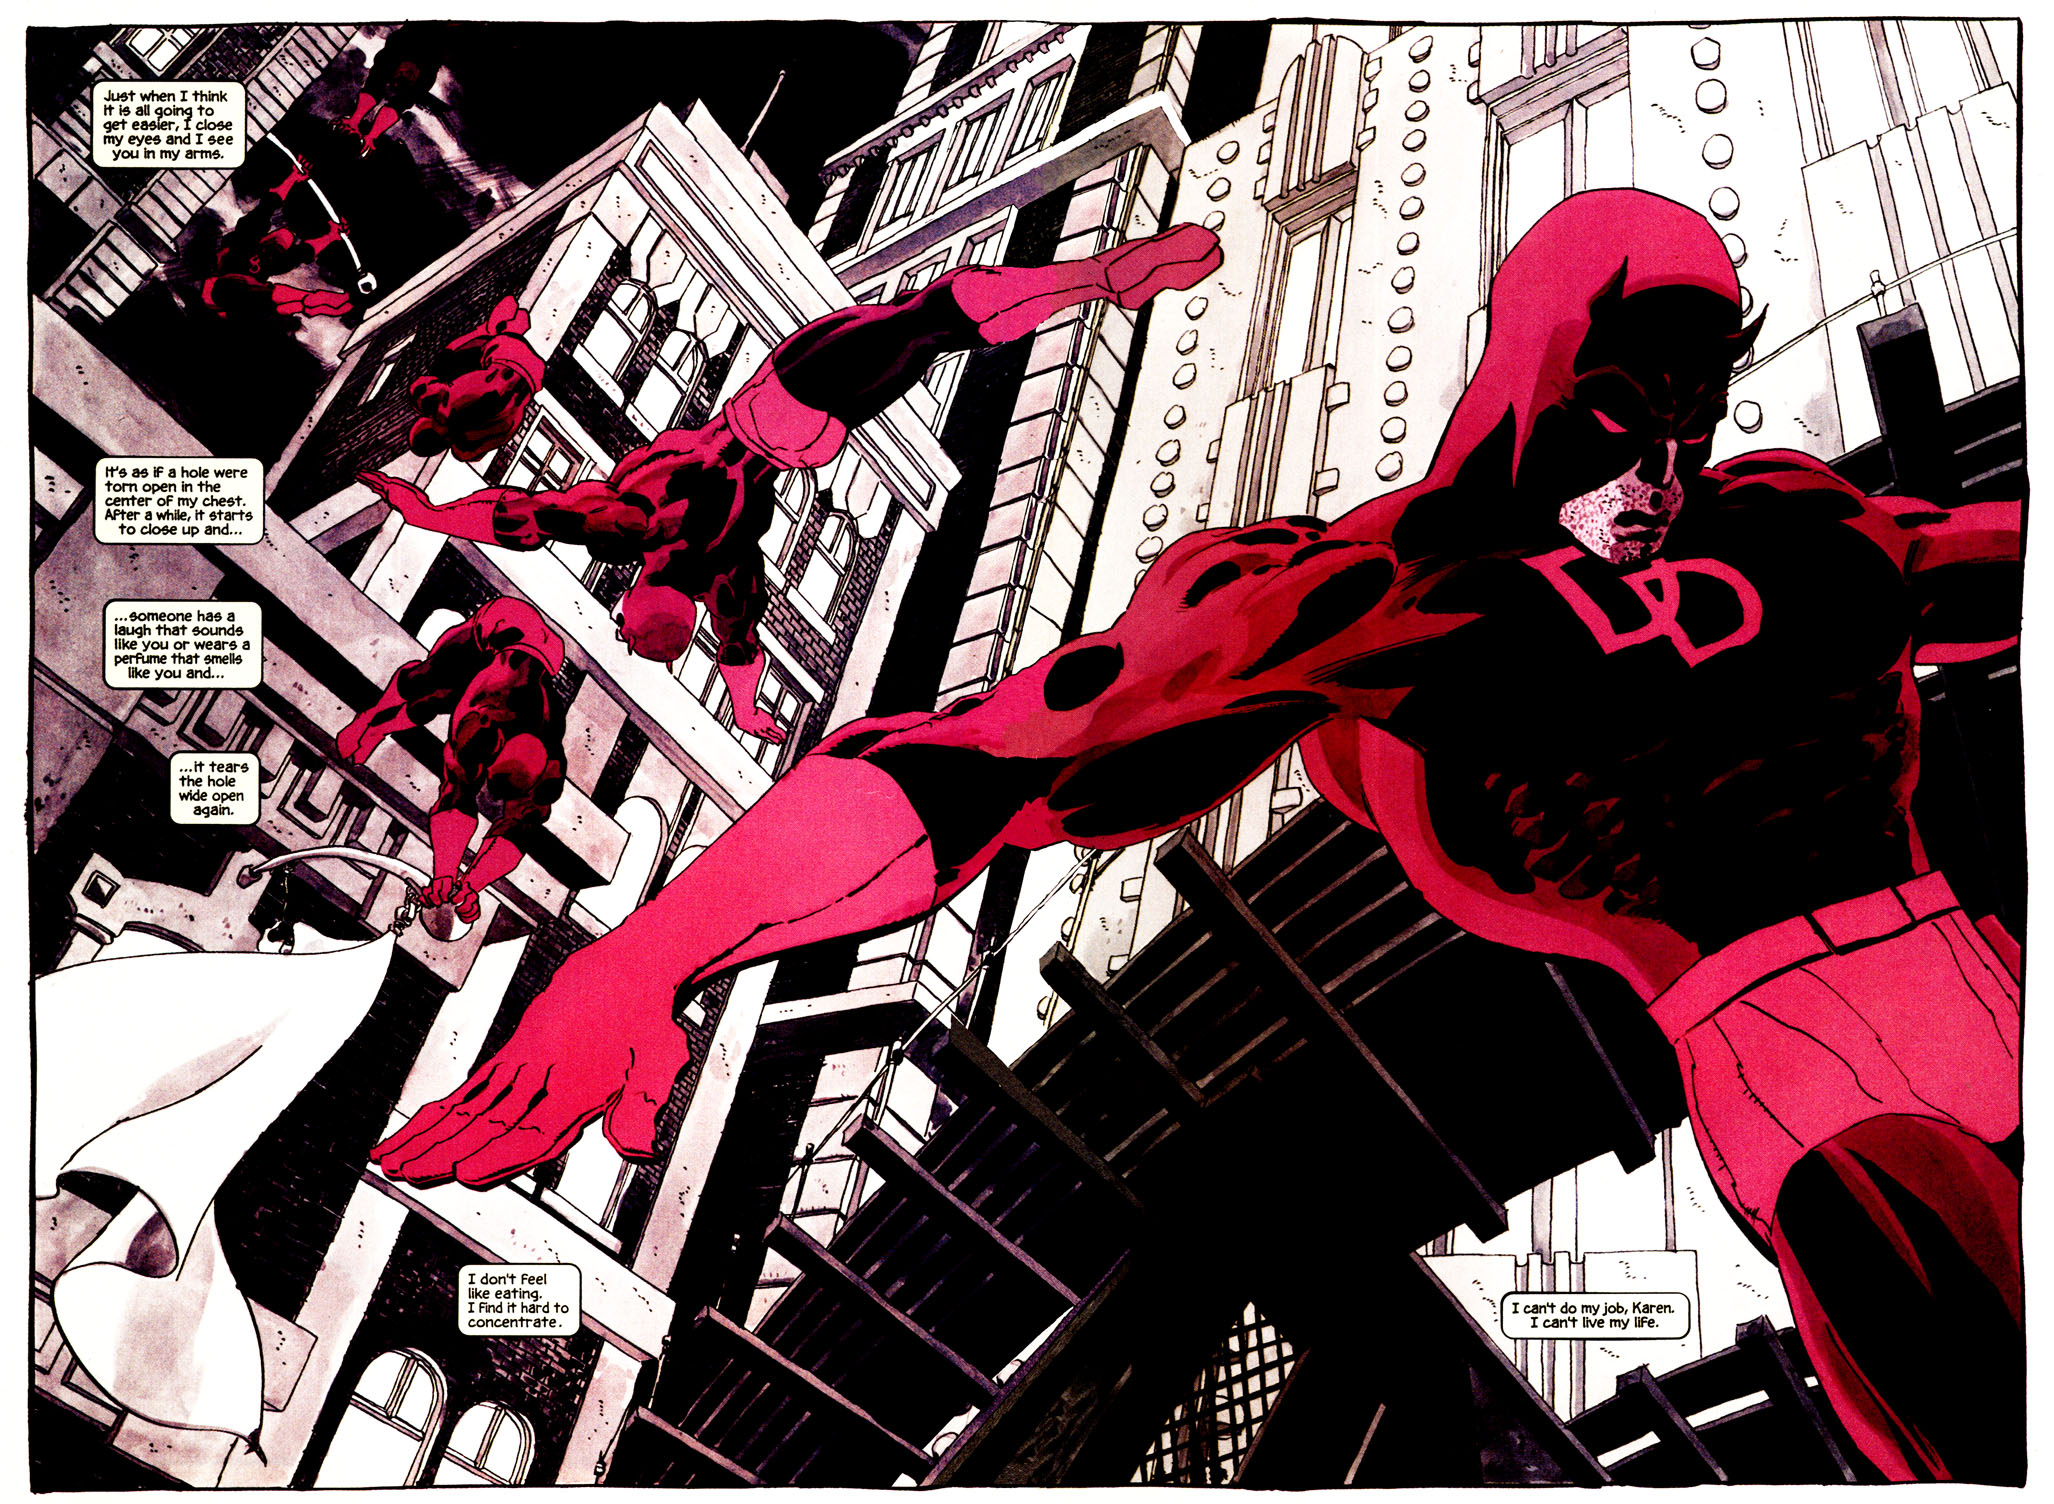 marvel comics and marvel s turnaround Publisher: marvel comics writer: jeph loeb artist: tim sale colourist: matt hollingsworth original release date: august 2001 as the next step in my recapping of some of my all-time favourite dd stories, i thought i'd take a look at 2001's daredevil: yellow from the powerhouse tandem of jeph loeb and tim sale.